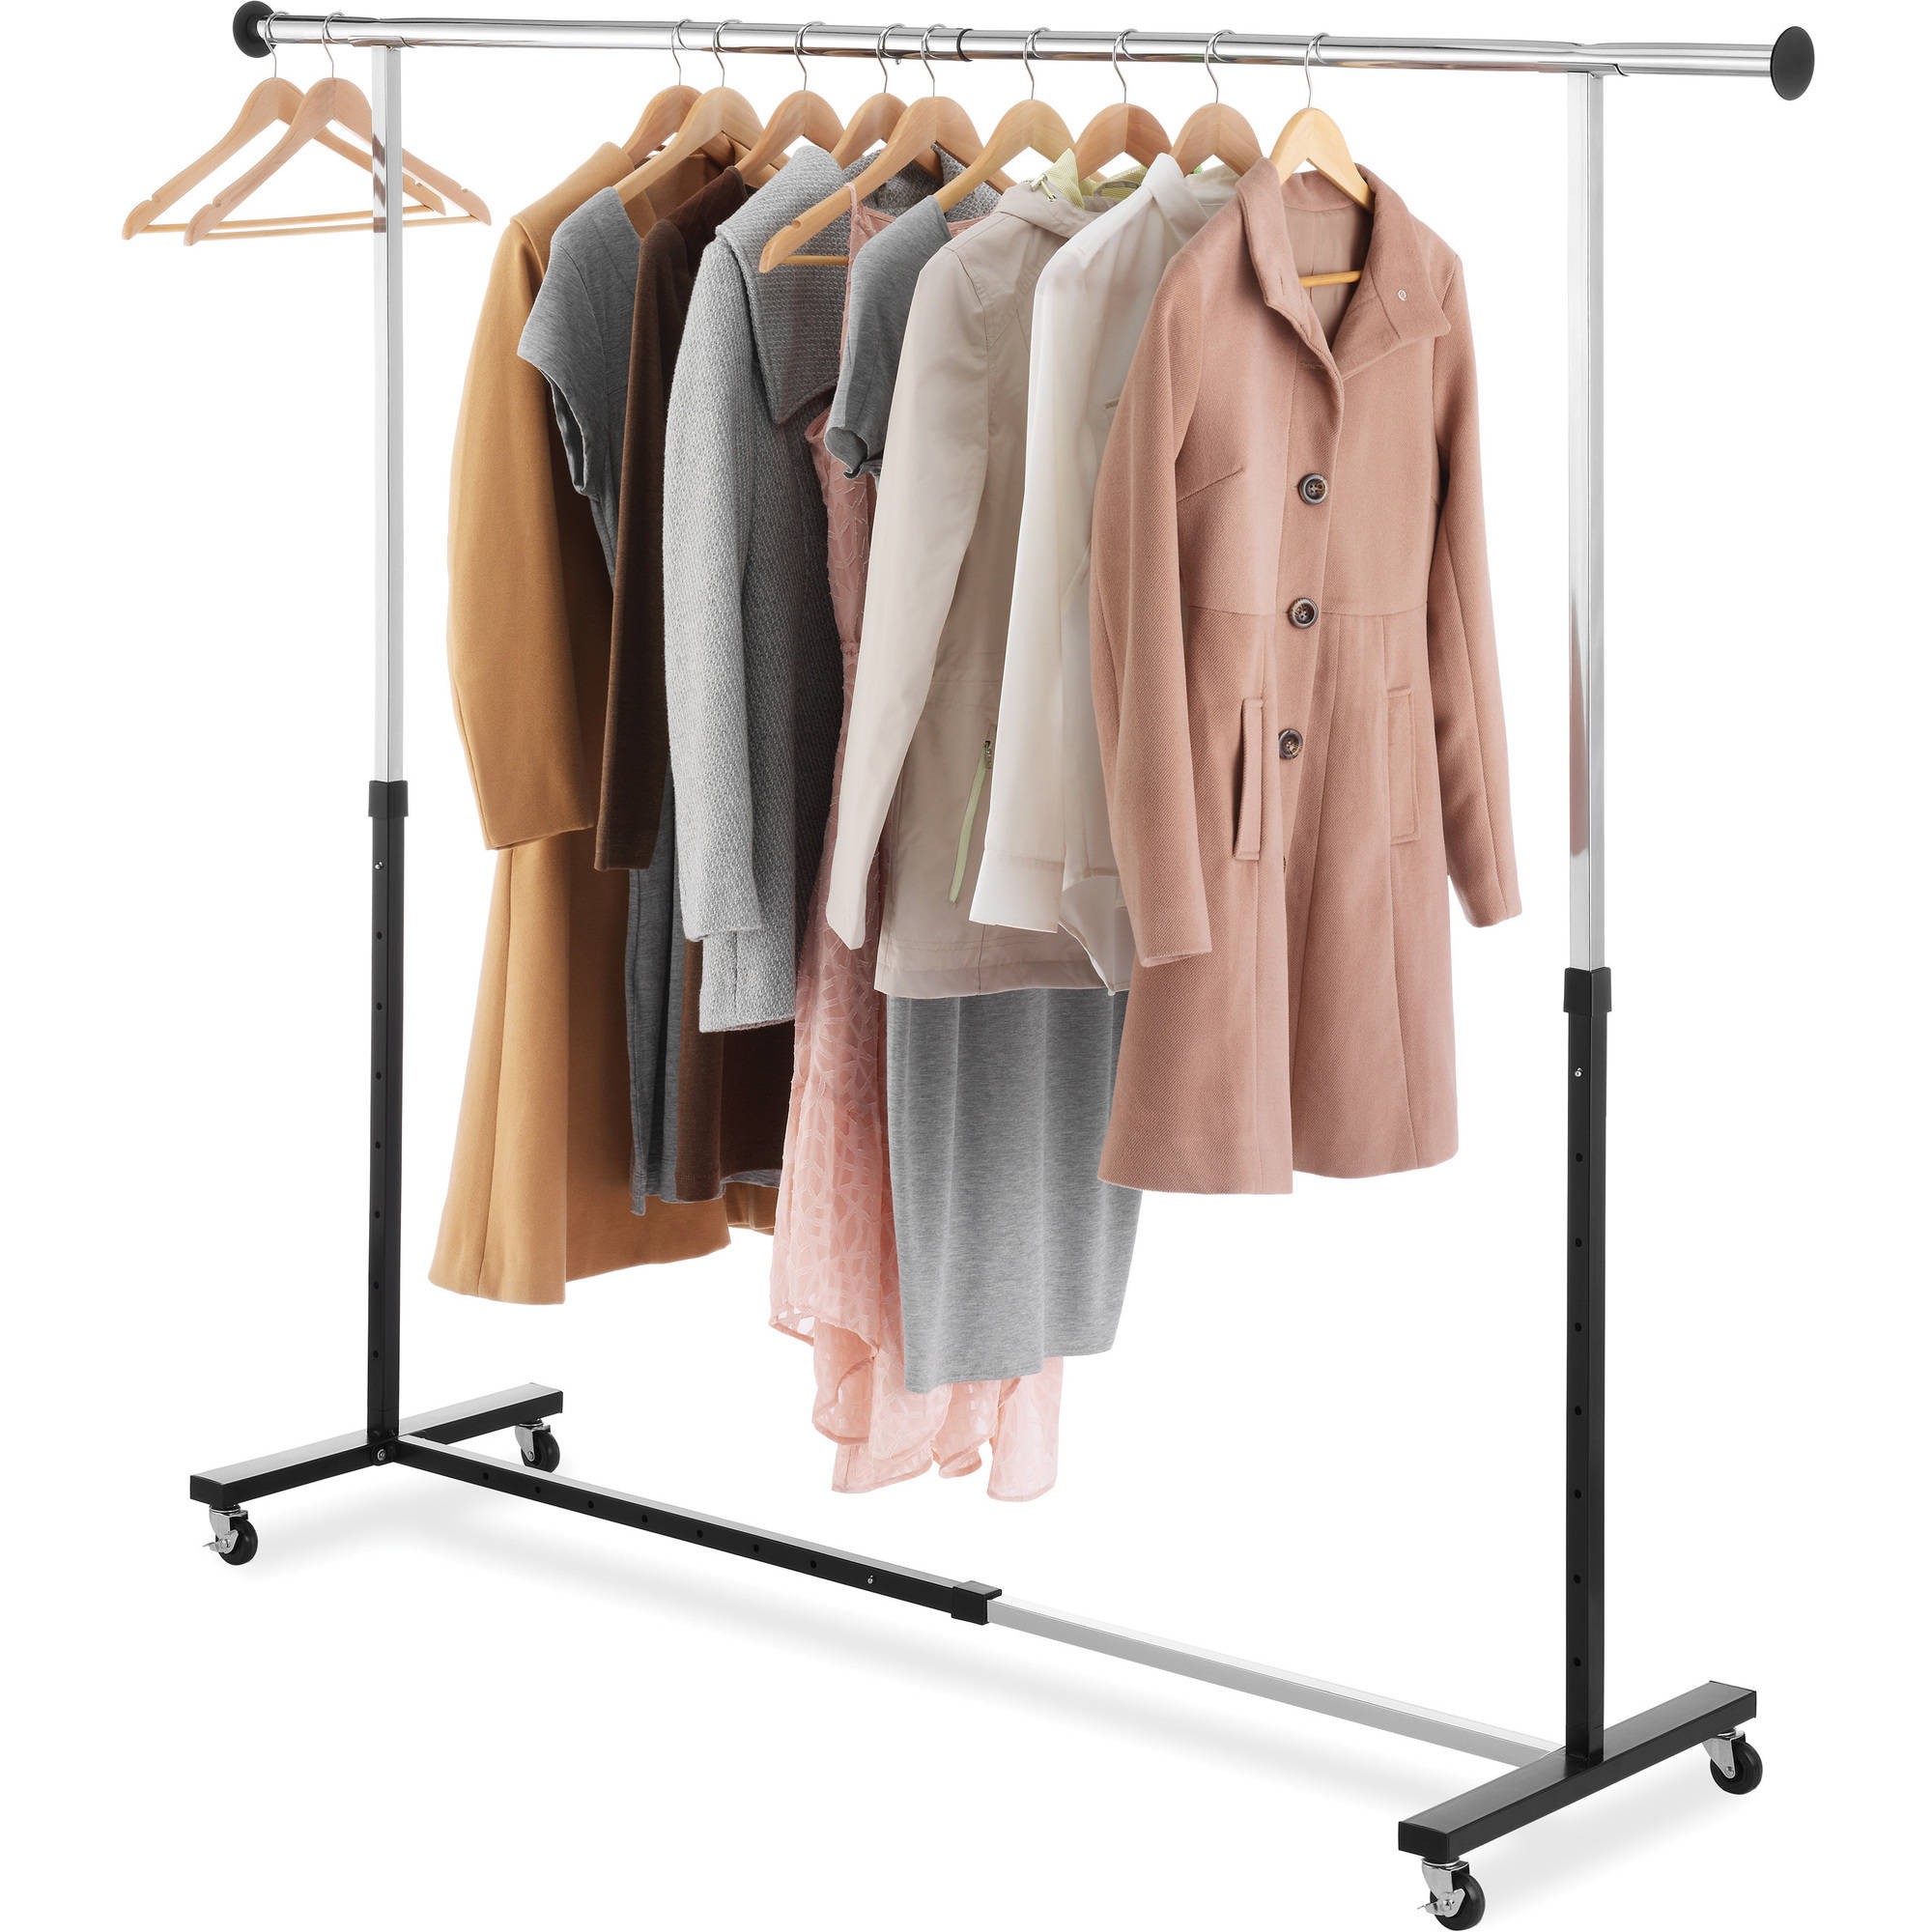 Whitmor Adjustable Garment Rack, Black and Chrome